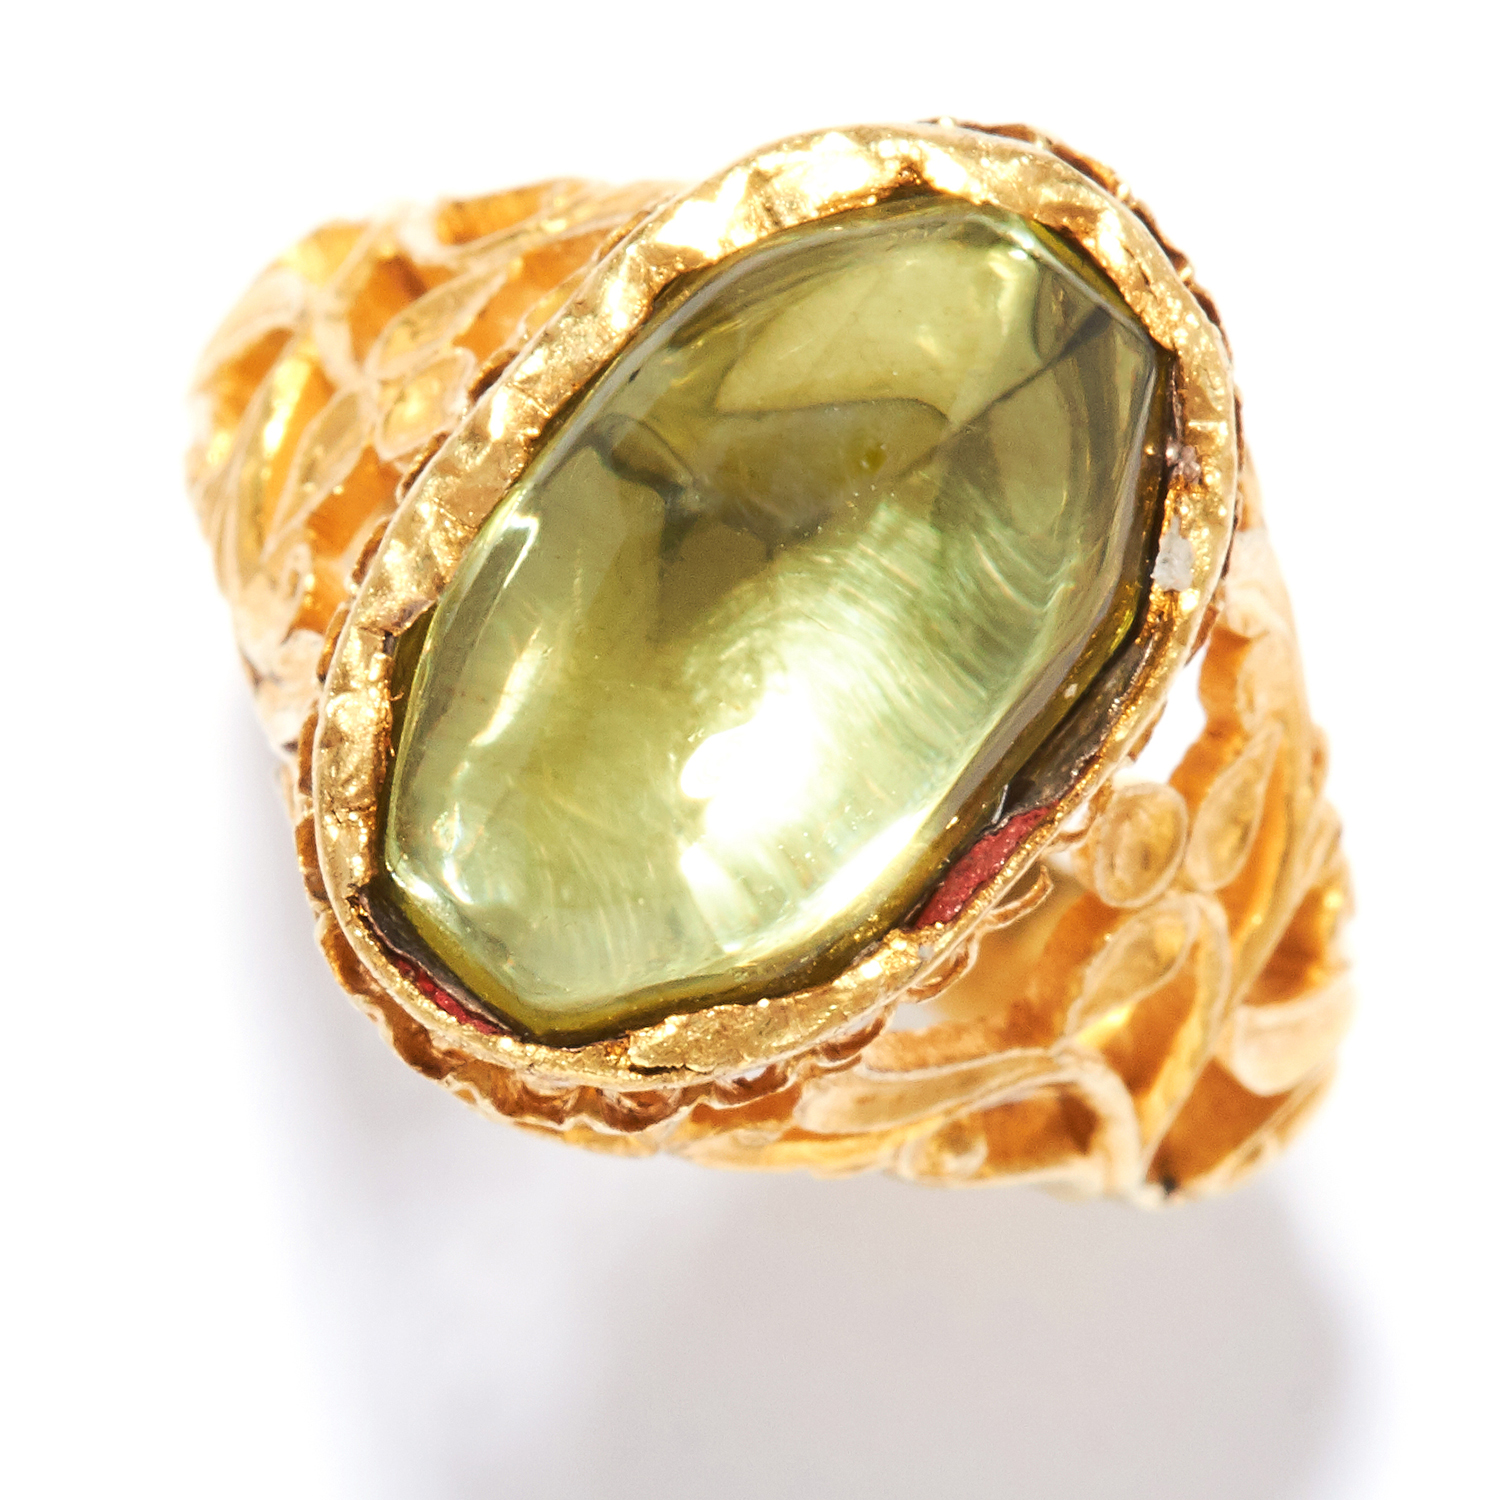 ANTIQUE PERIDOT RING in high carat yellow gold, set with a cabochon peridot in open scrolling